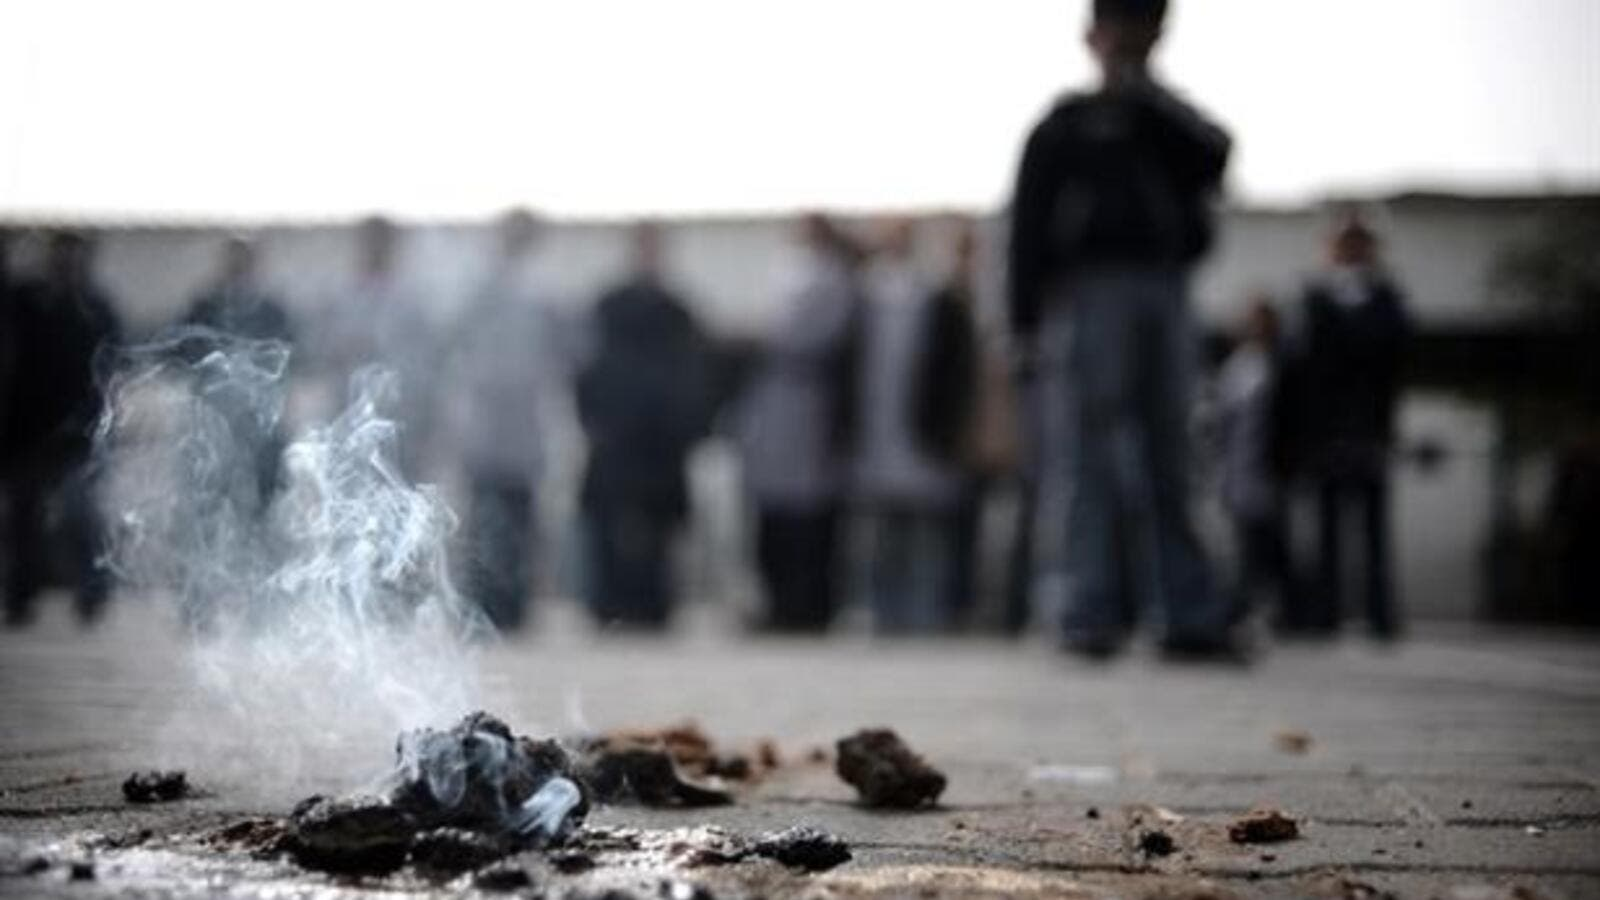 White phosphorus burning on the ground in a file photo. (AFP/File)